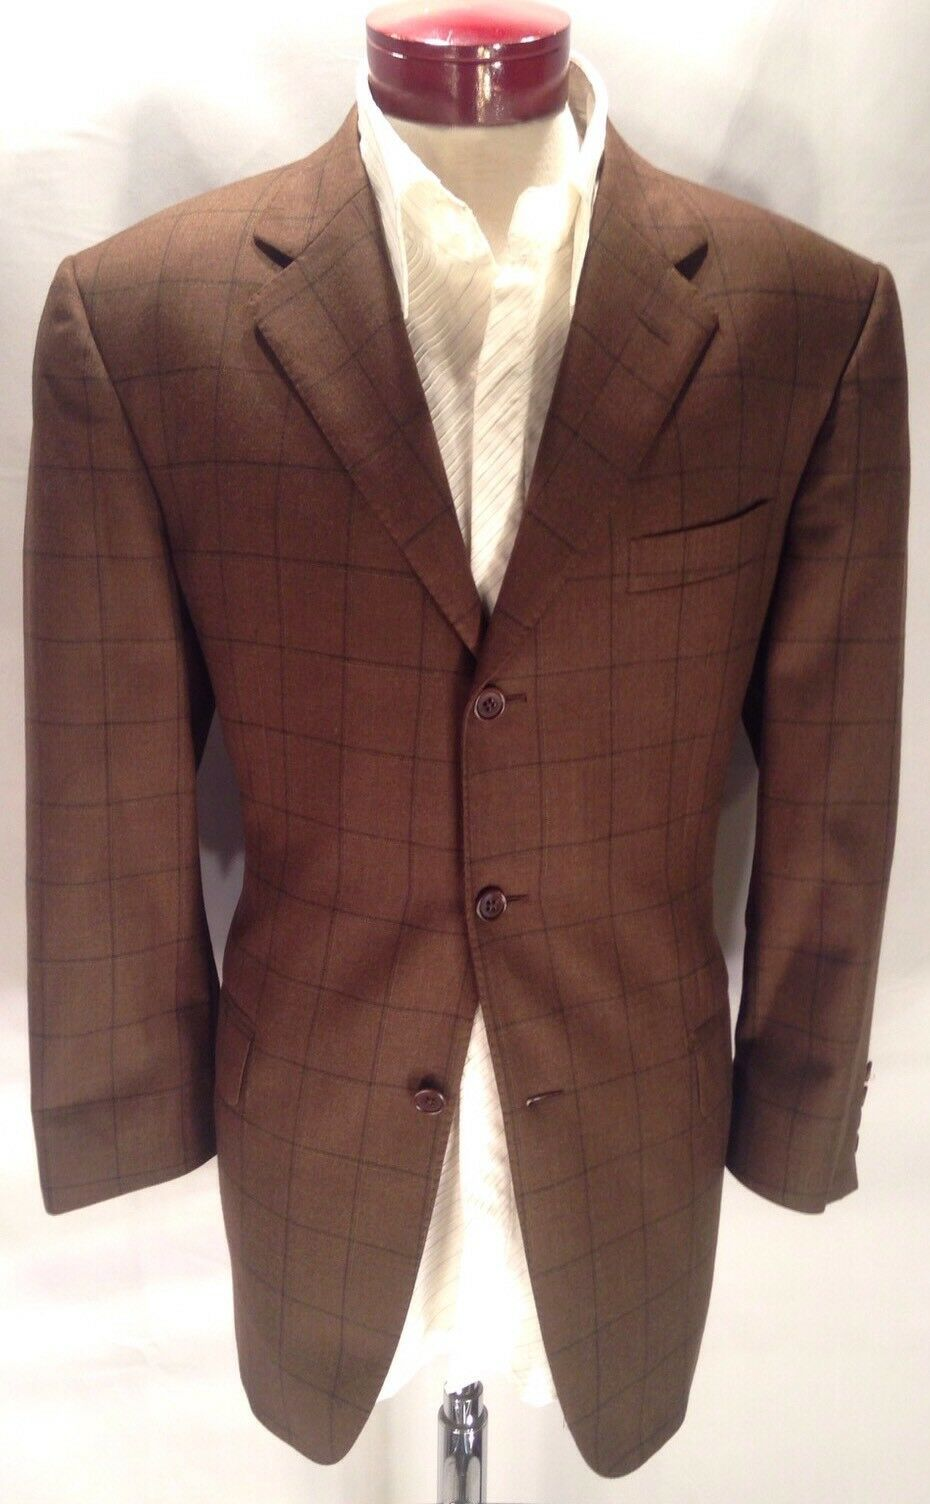 F261 Gian Luca Napoli 42R Braun Windowpane Sports Coat Blazer 100% Wool